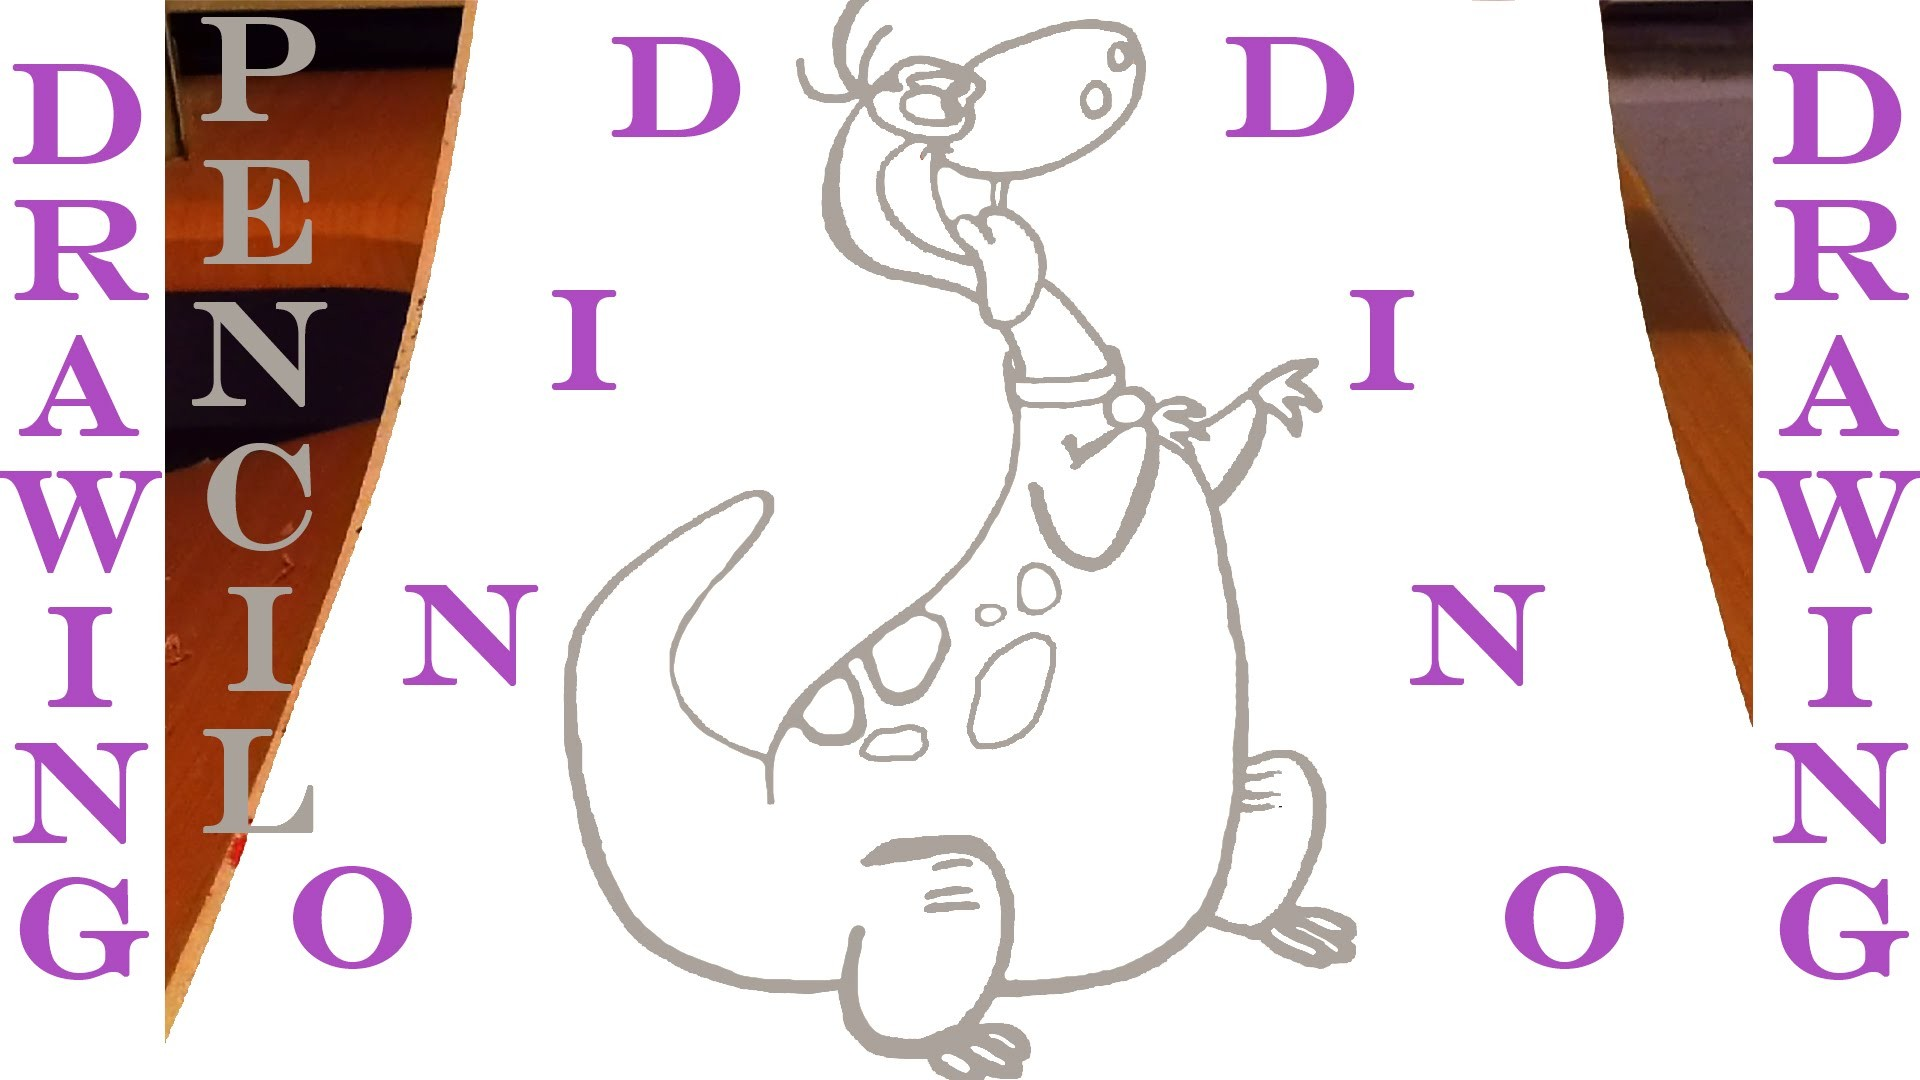 How to draw a Dinosaur DINO Step by Step Easy, draw easy stuff.things but cool on paper | PENCIL